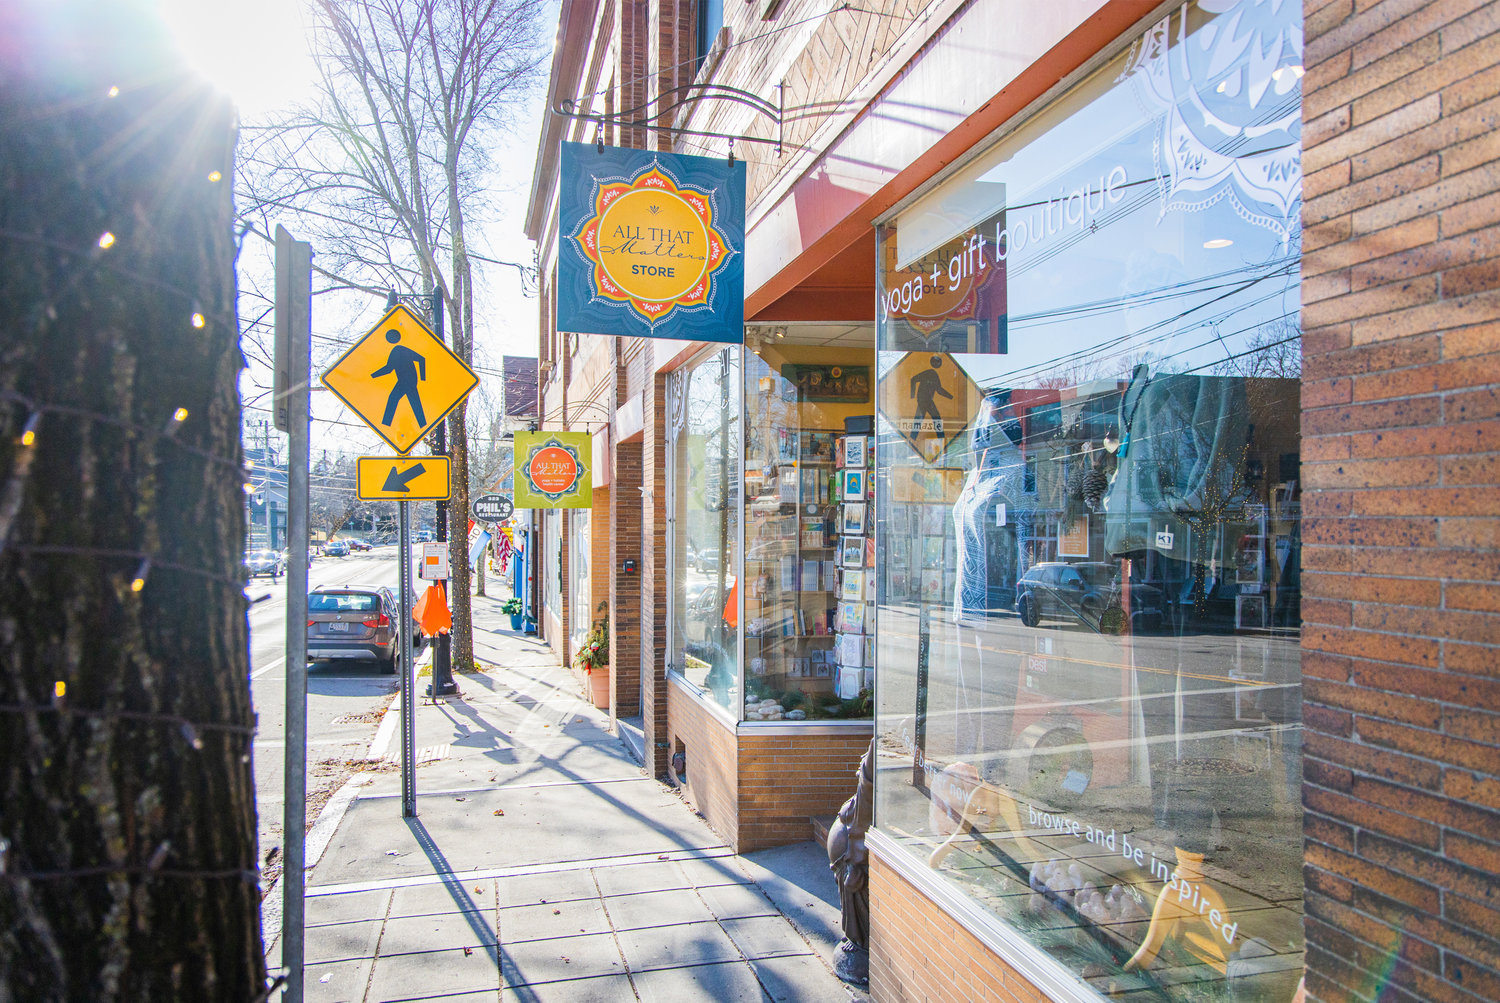 While it's technically a village of South Kingstown, Wakefield is a bustling center of life in South County, home to the area's only mall, an excellent hospital, and a Main Street made for strolling.